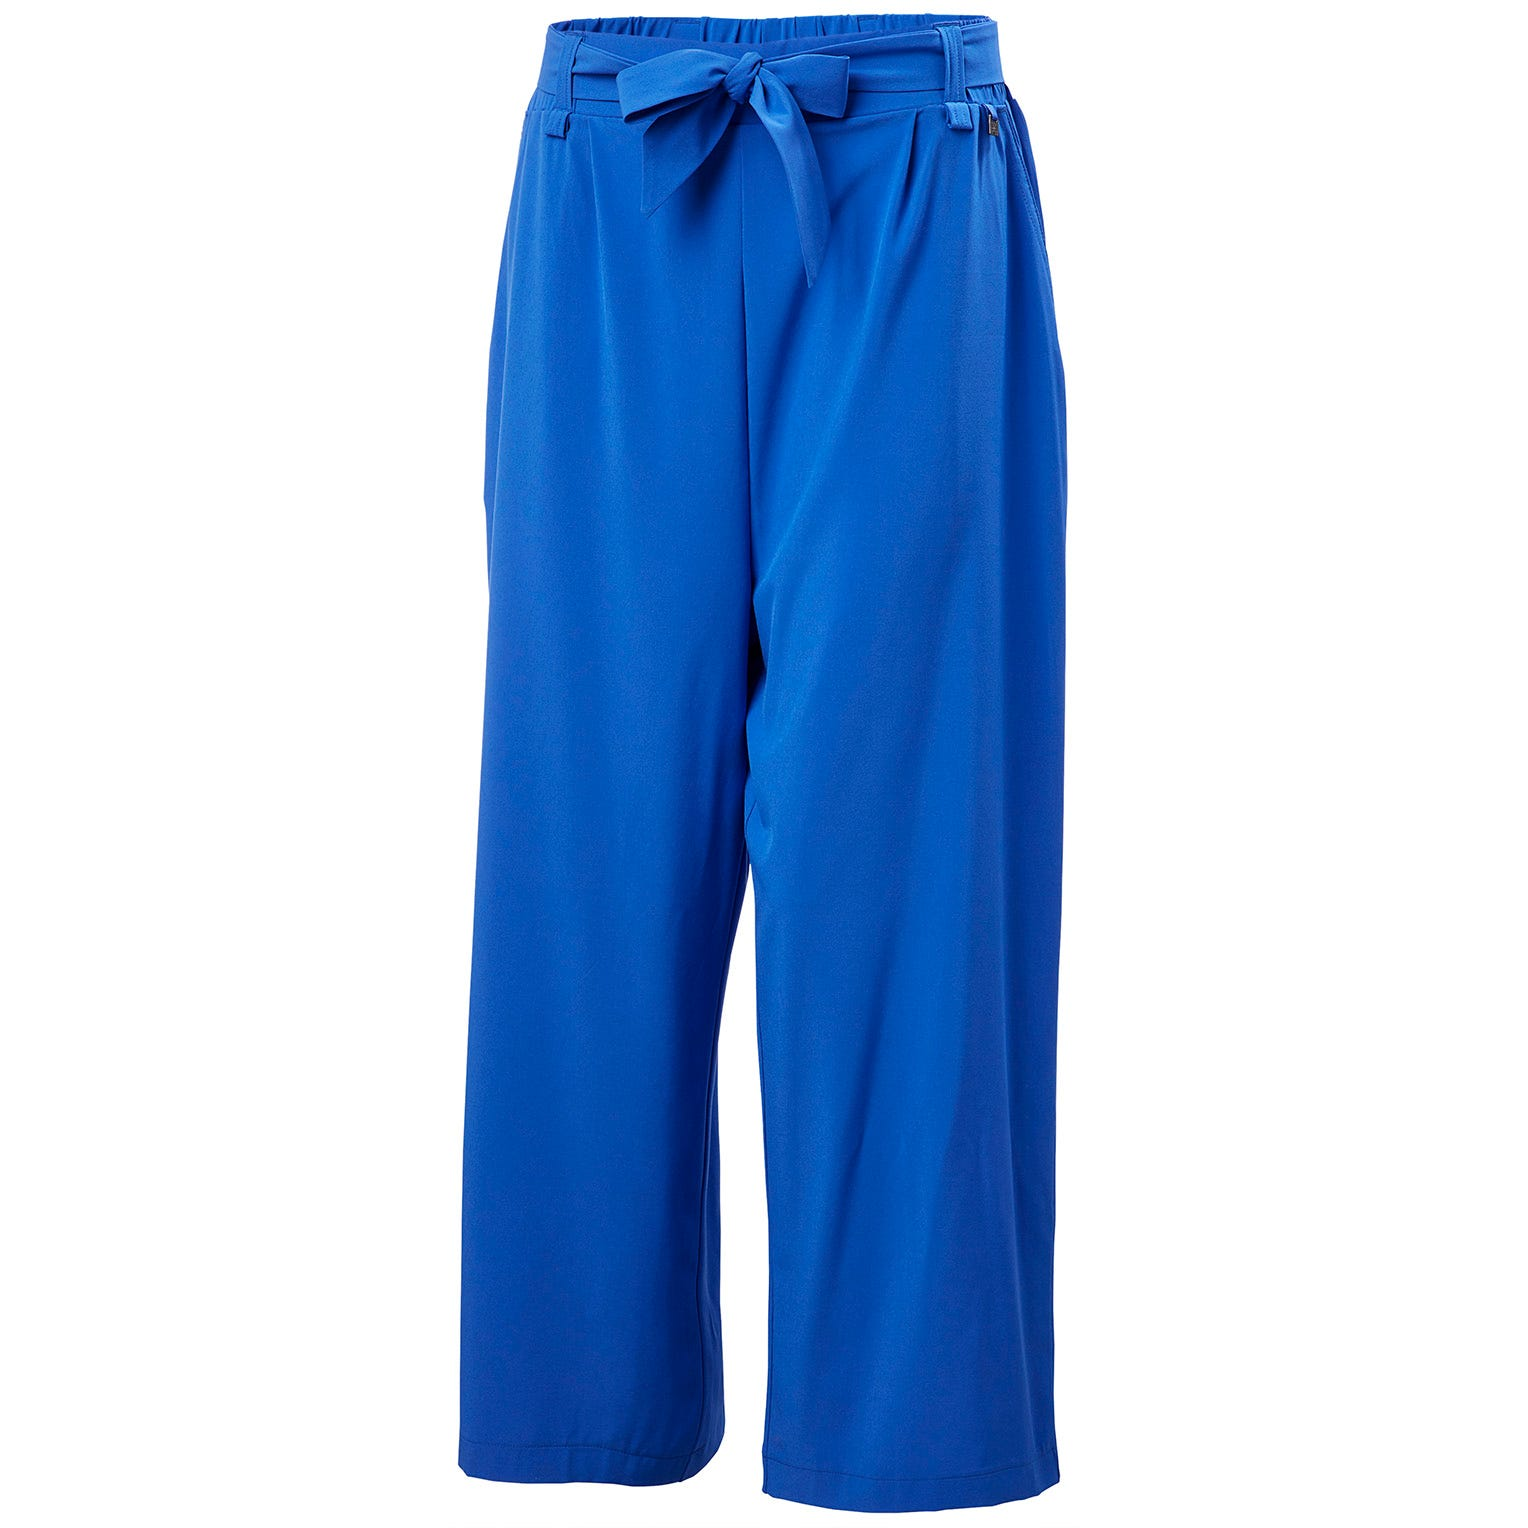 Helly Hansen Womens Siren Culotte Sailing Trouser Blue M